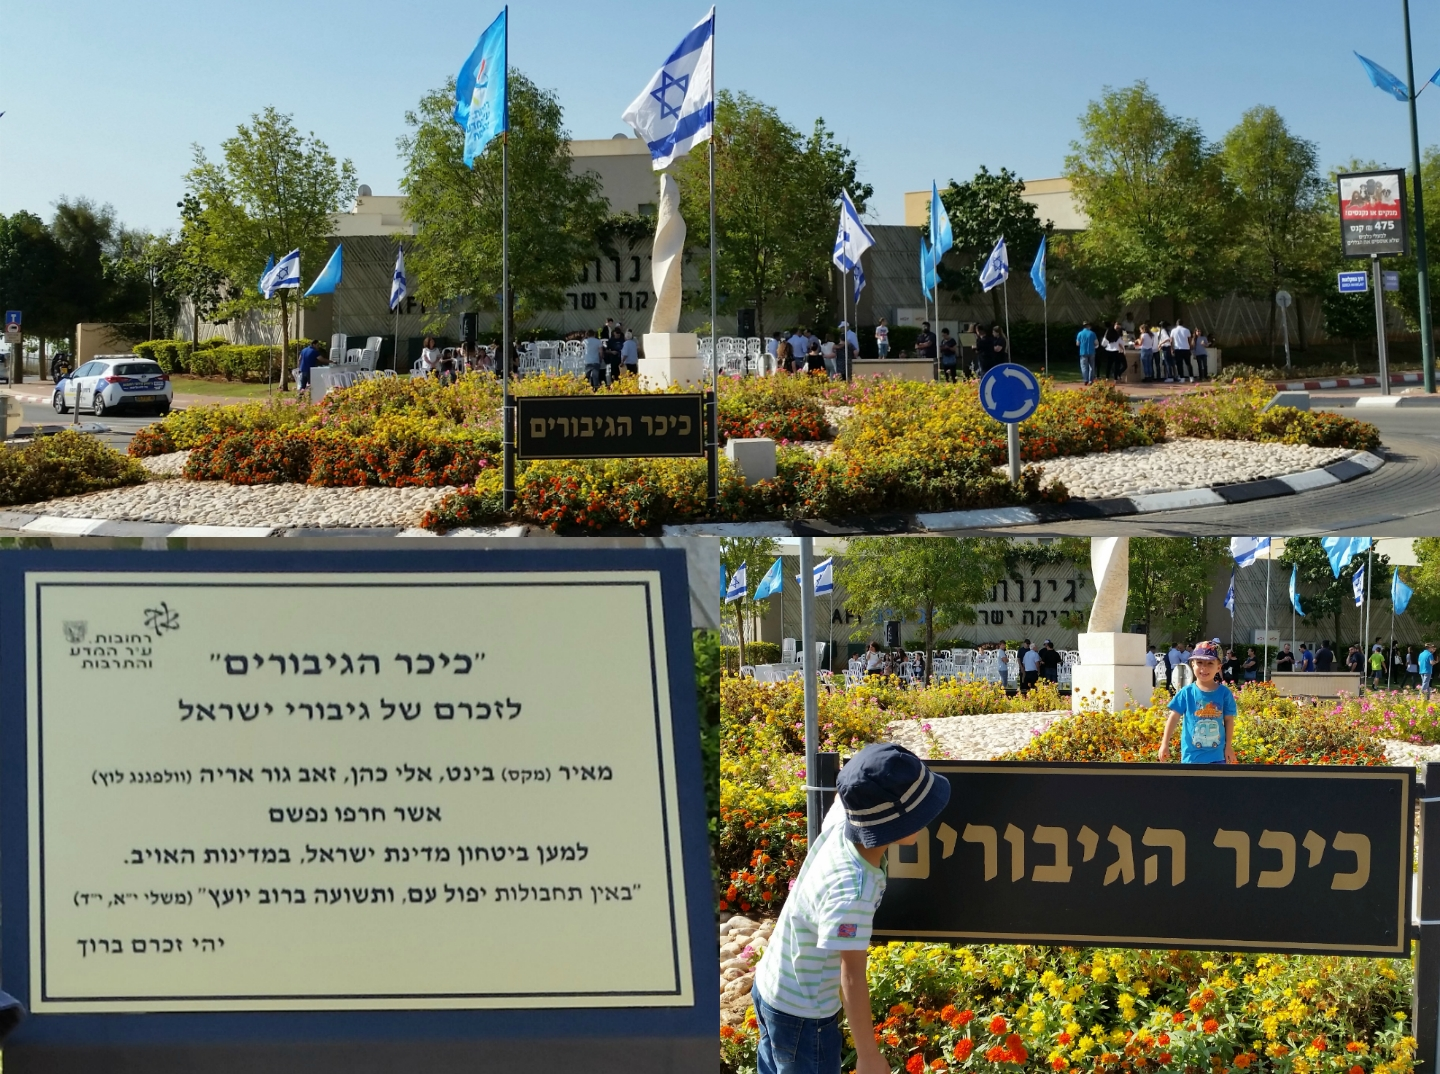 ceremony heroes square Rehovot